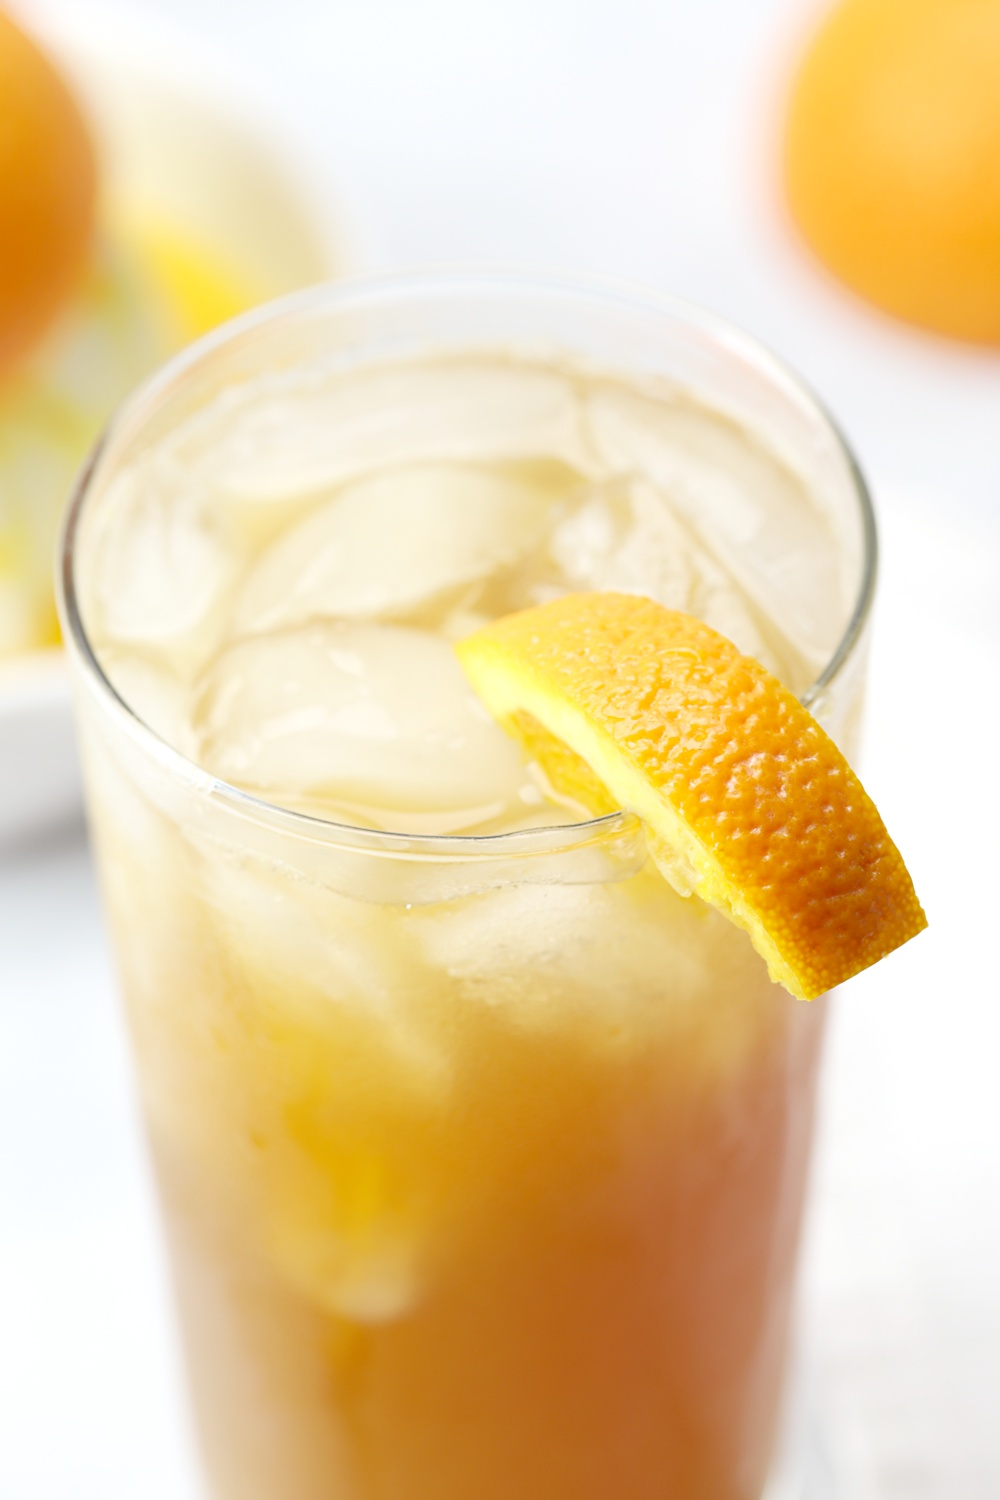 A glass of fireball orange sweet tea with an orange slice on the rim.